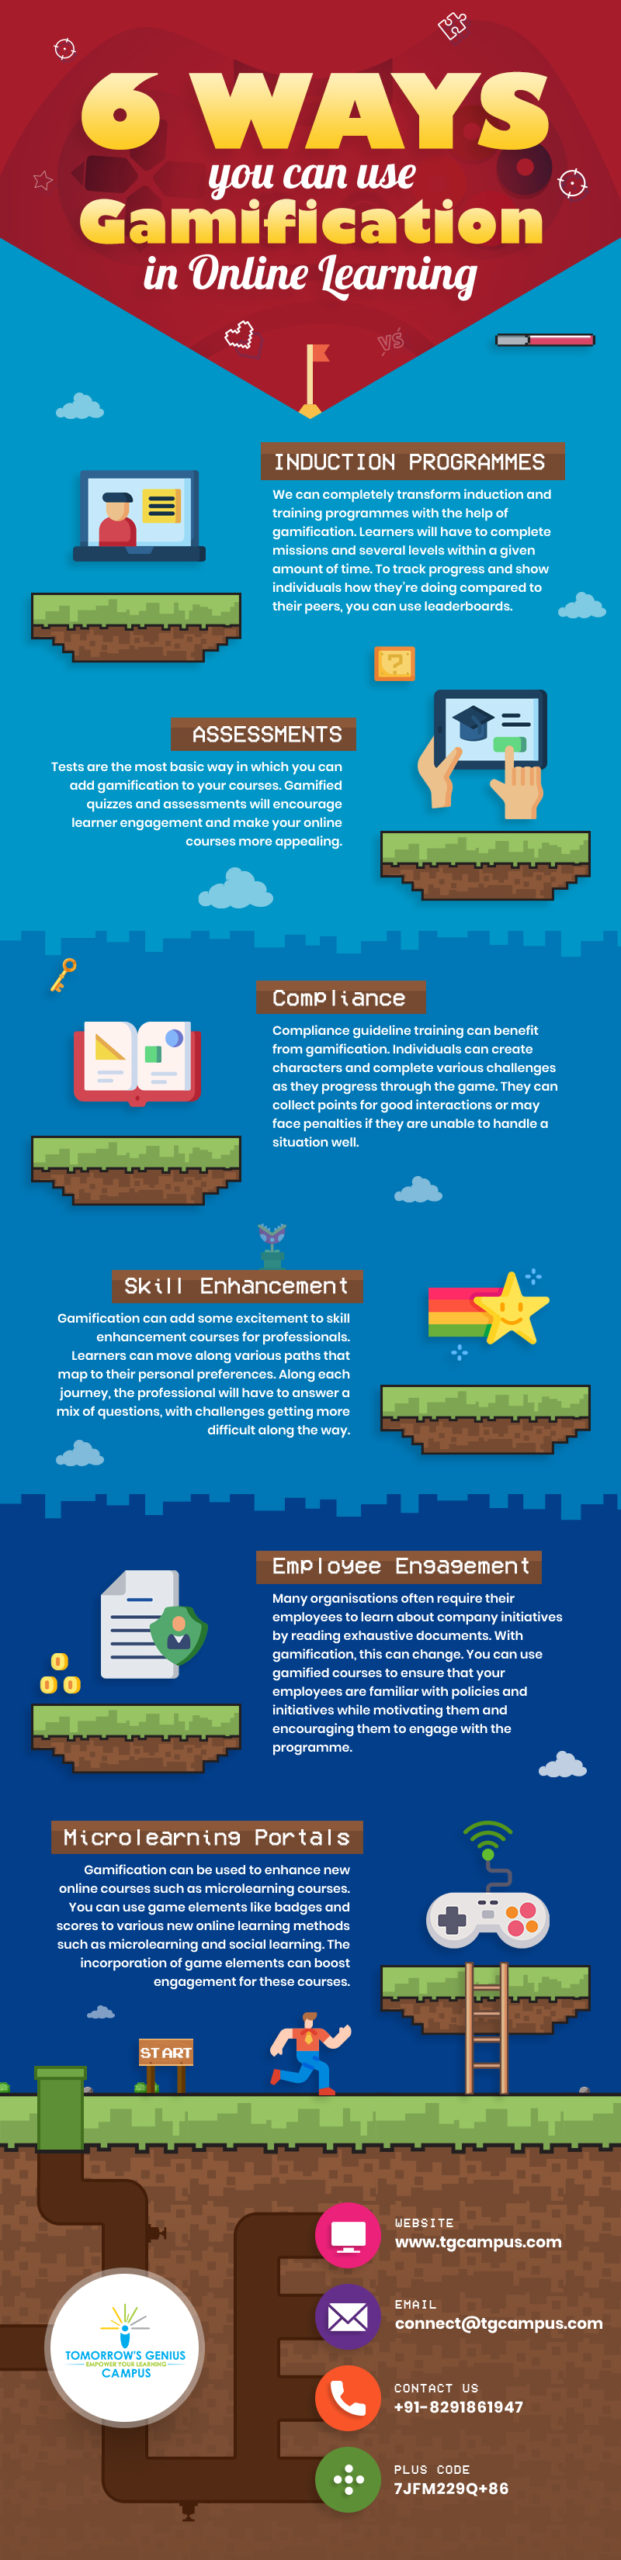 Gamification-in-Online-Learning